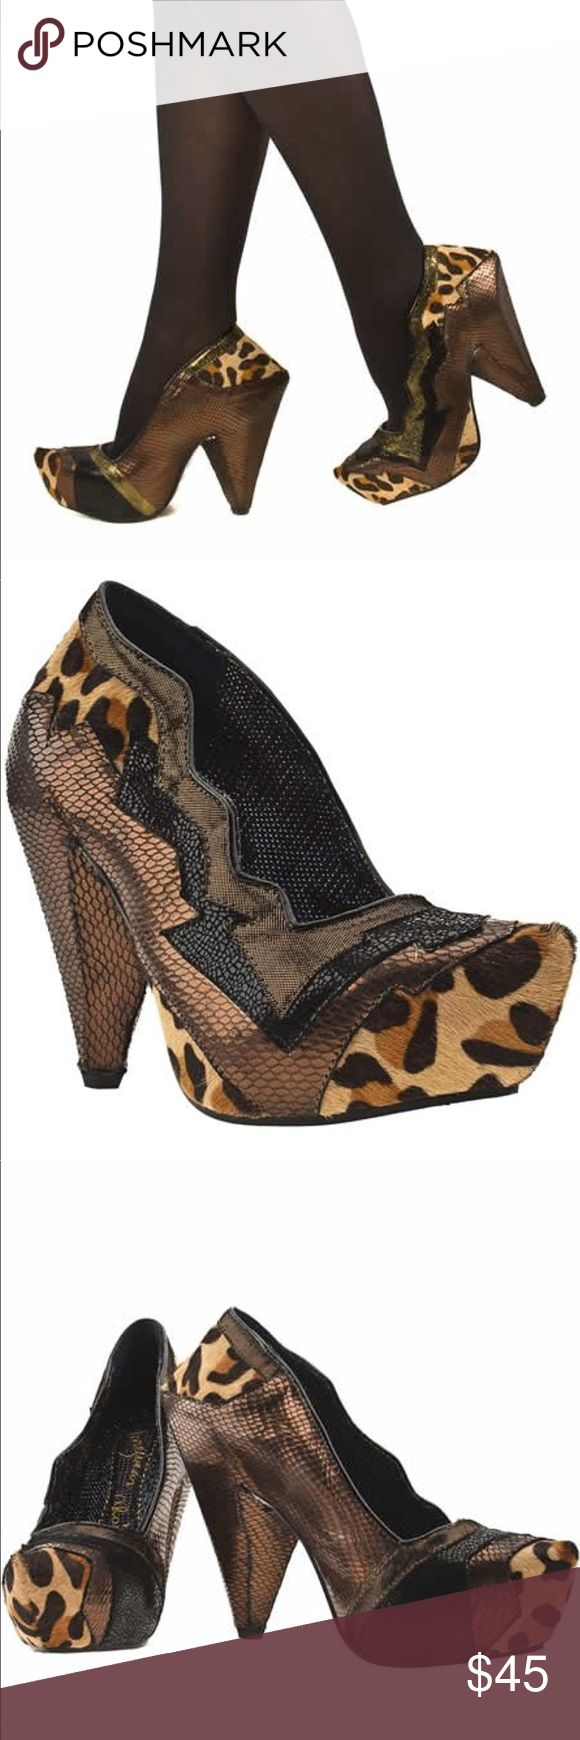 Irregular choice Cheetah heels Definitely have been worn so there are spots of rubbing as pictured but not extremely noticeable when worn very very cute and rather outlandish shoes! Please ask for any more pictures if interested and bundle for a better price! irregular choice Shoes Heels